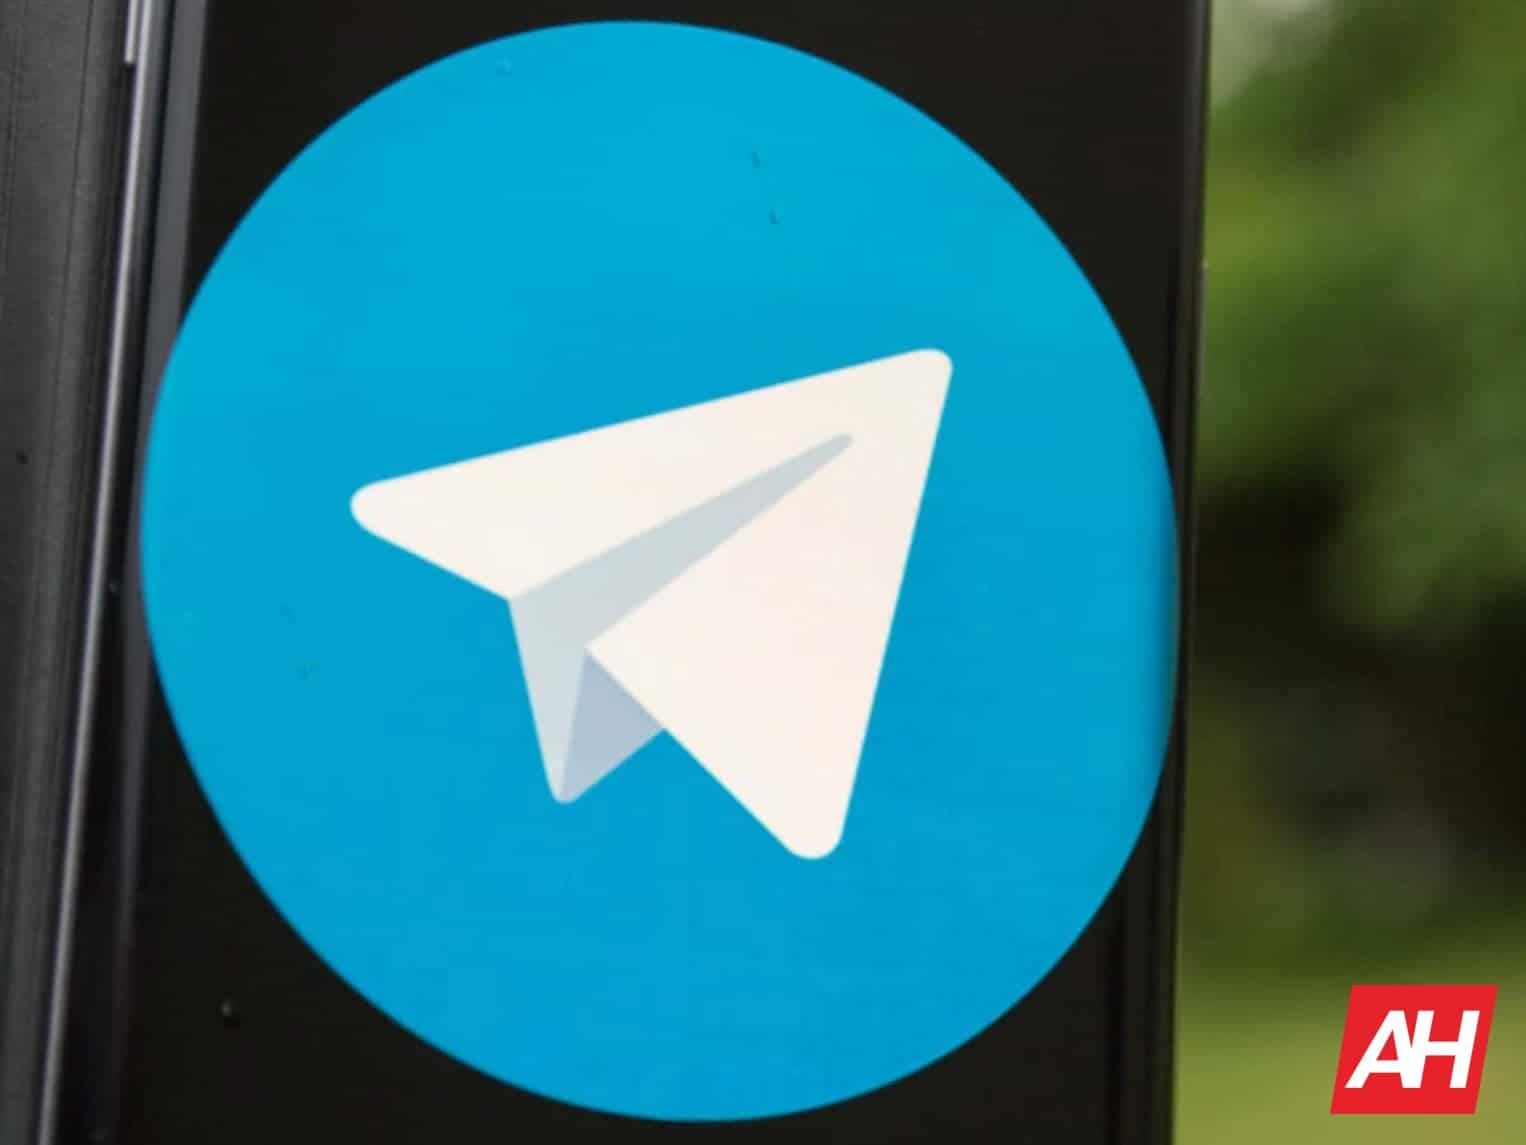 A slew of new Telegram features just arrived